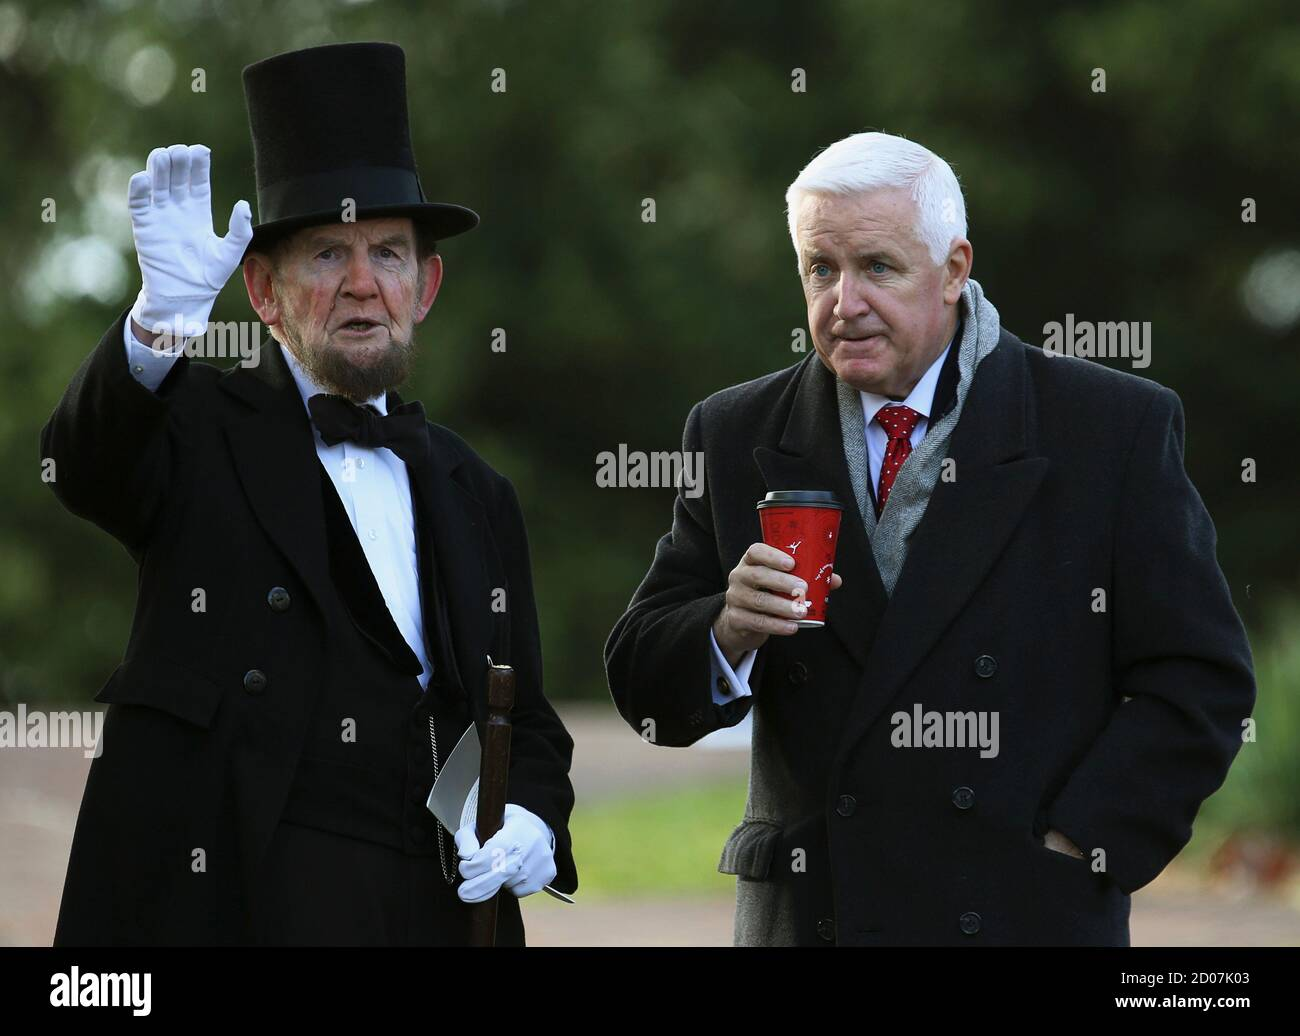 James Getty (L), portraying U.S. President Abraham Lincoln, chats with Pennsylvania Republican Governor Tom Corbett (R) before delivering the Gettysburg Address at the Gettysburg National Cemetery in Pennsylvania November 19, 2013.  Lincoln travelled to Gettysburg in 1863 to deliver a few concluding remarks at a formal dedication. Today marks the 150th anniversary of  Lincoln's famous two-minute speech.  REUTERS/Gary Cameron  (UNITED STATES - Tags: ANNIVERSARY POLITICS) Stock Photo